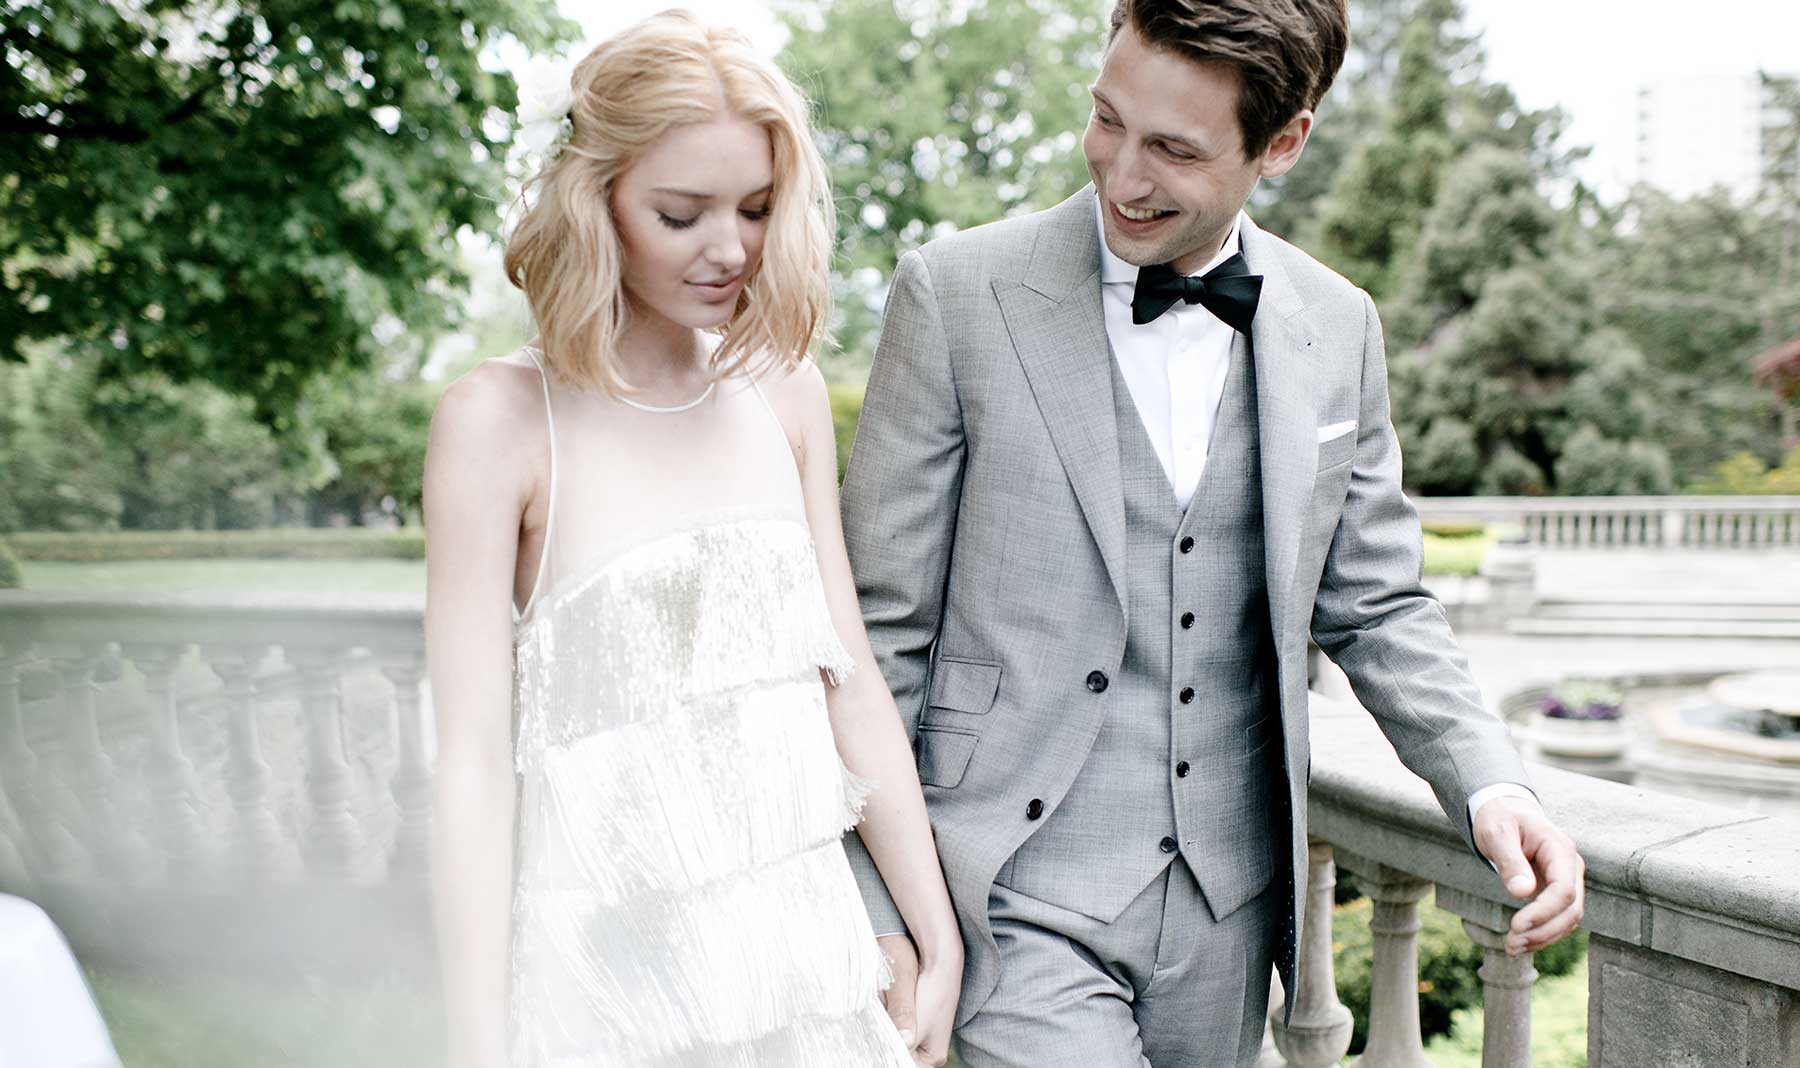 The wedding suit—not just for weddings!